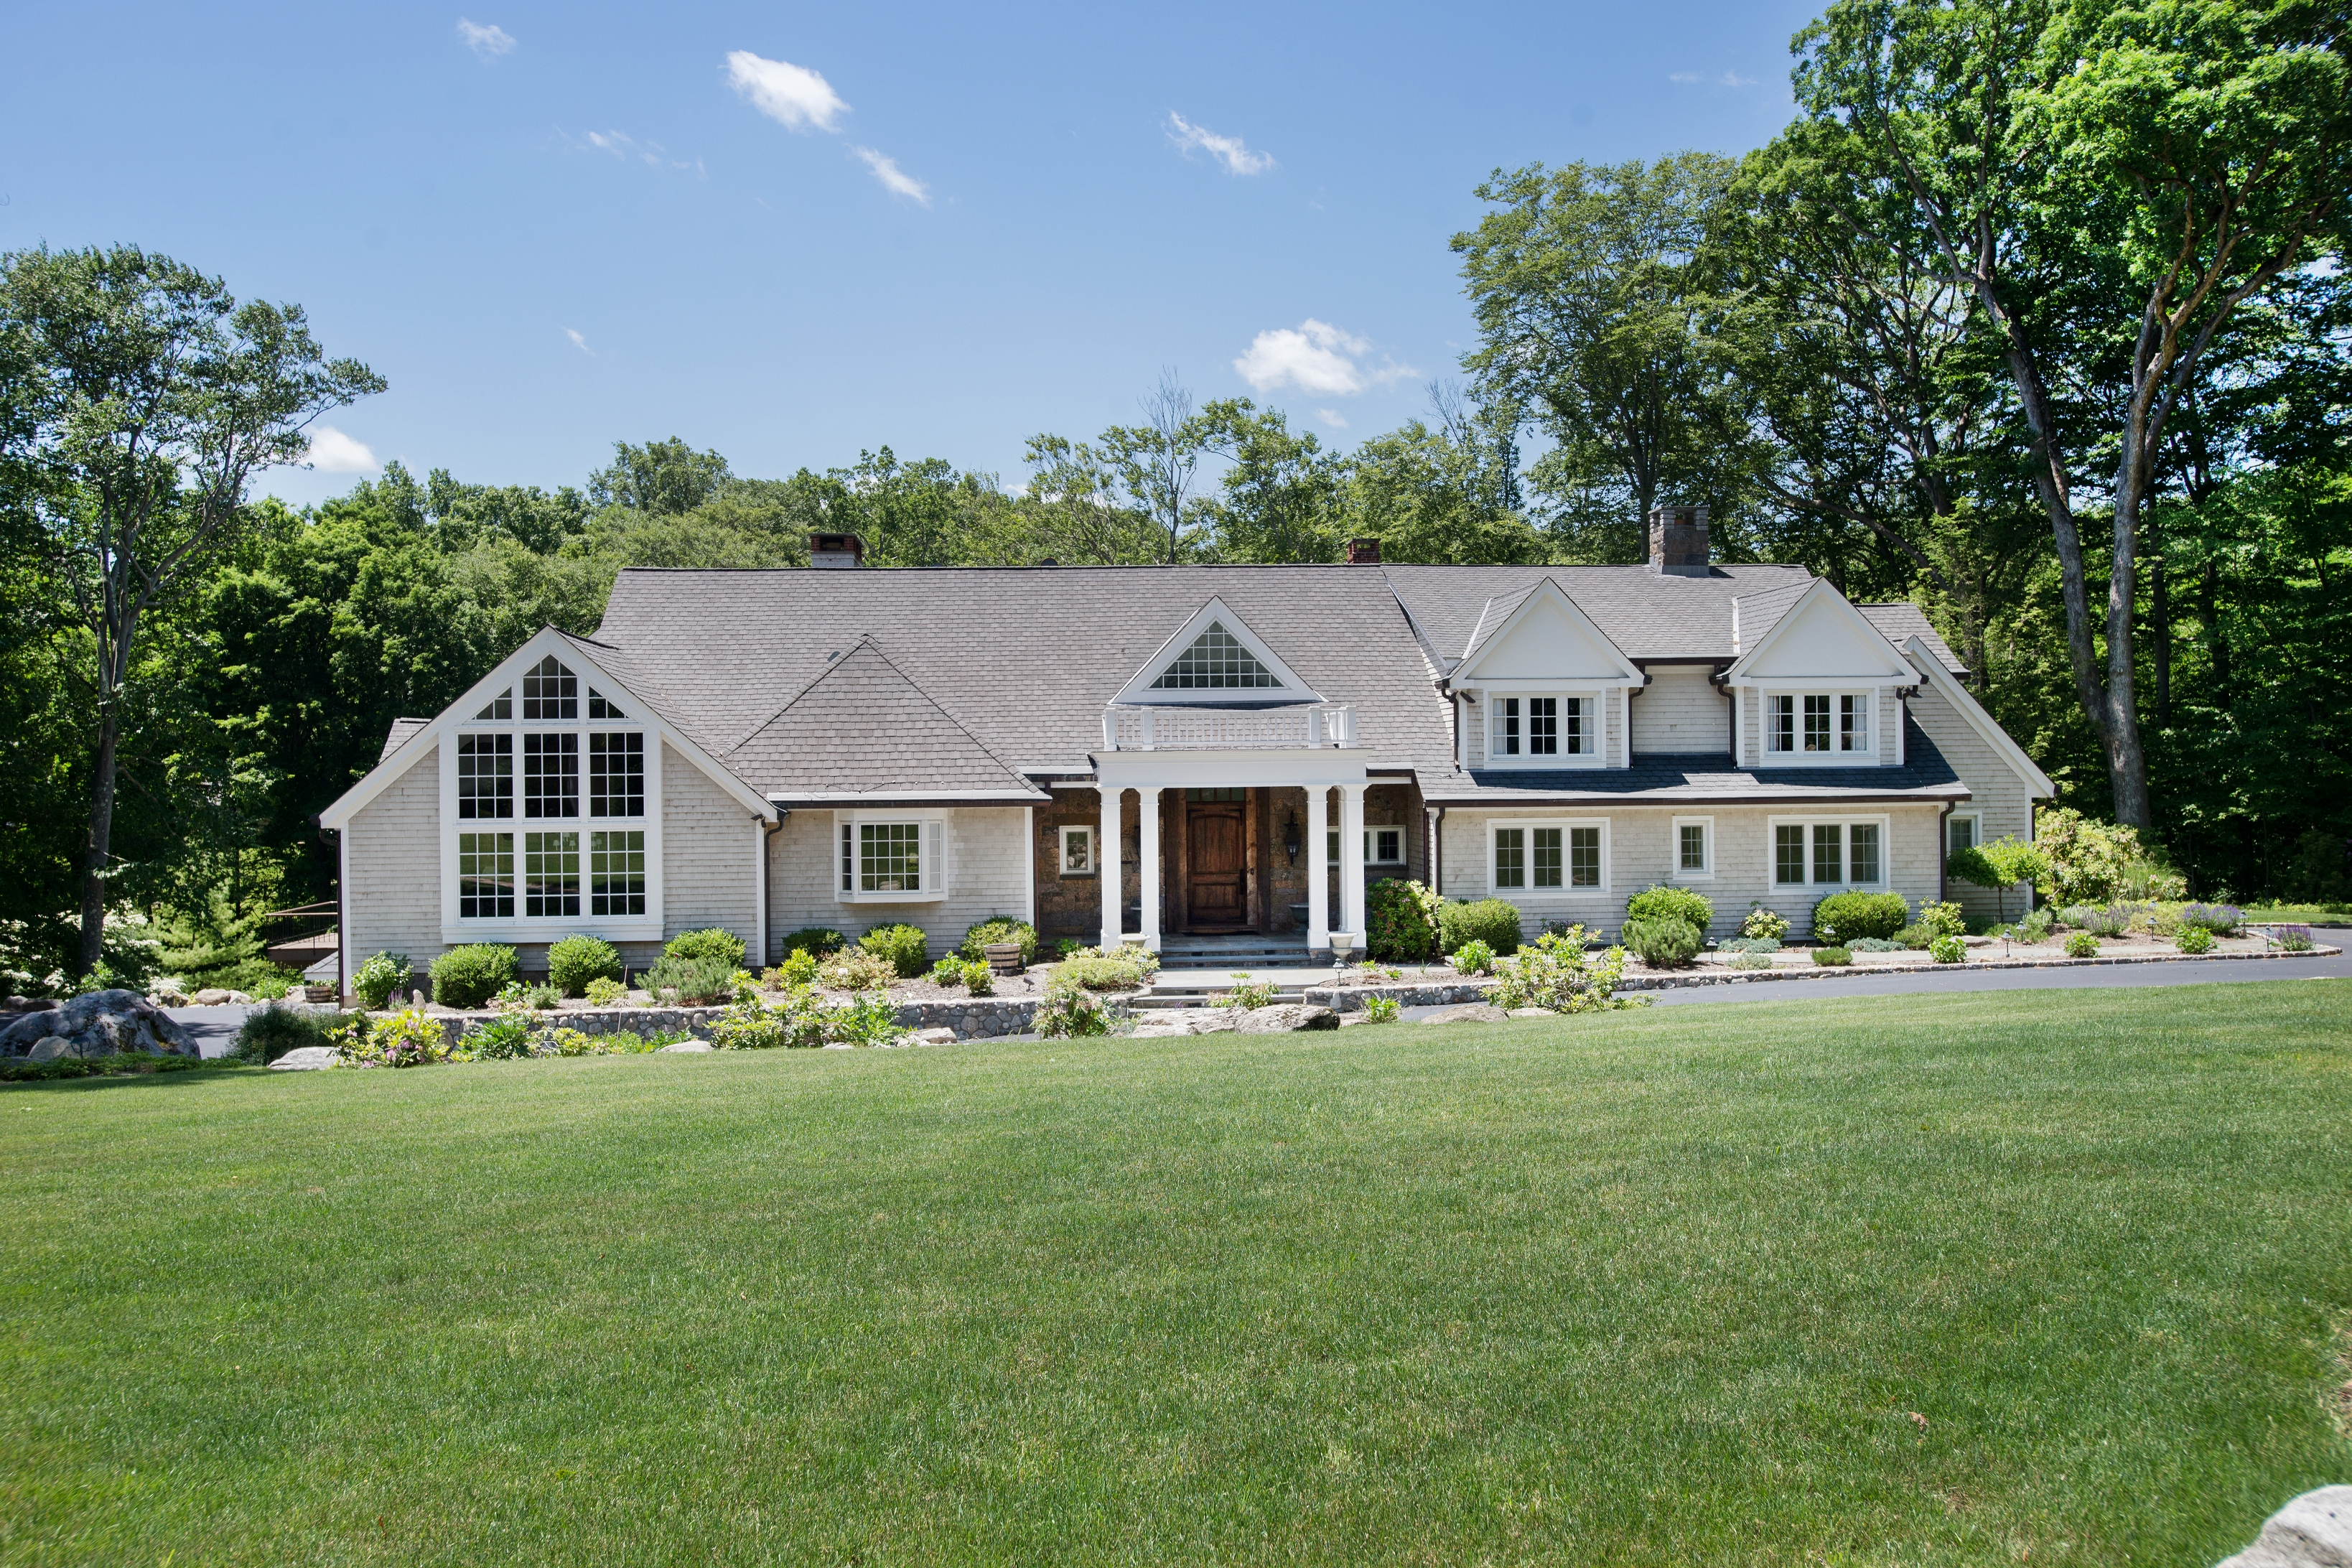 Single Family Home for Sale at 364 Laurel Road New Canaan, Connecticut, 06840 United States